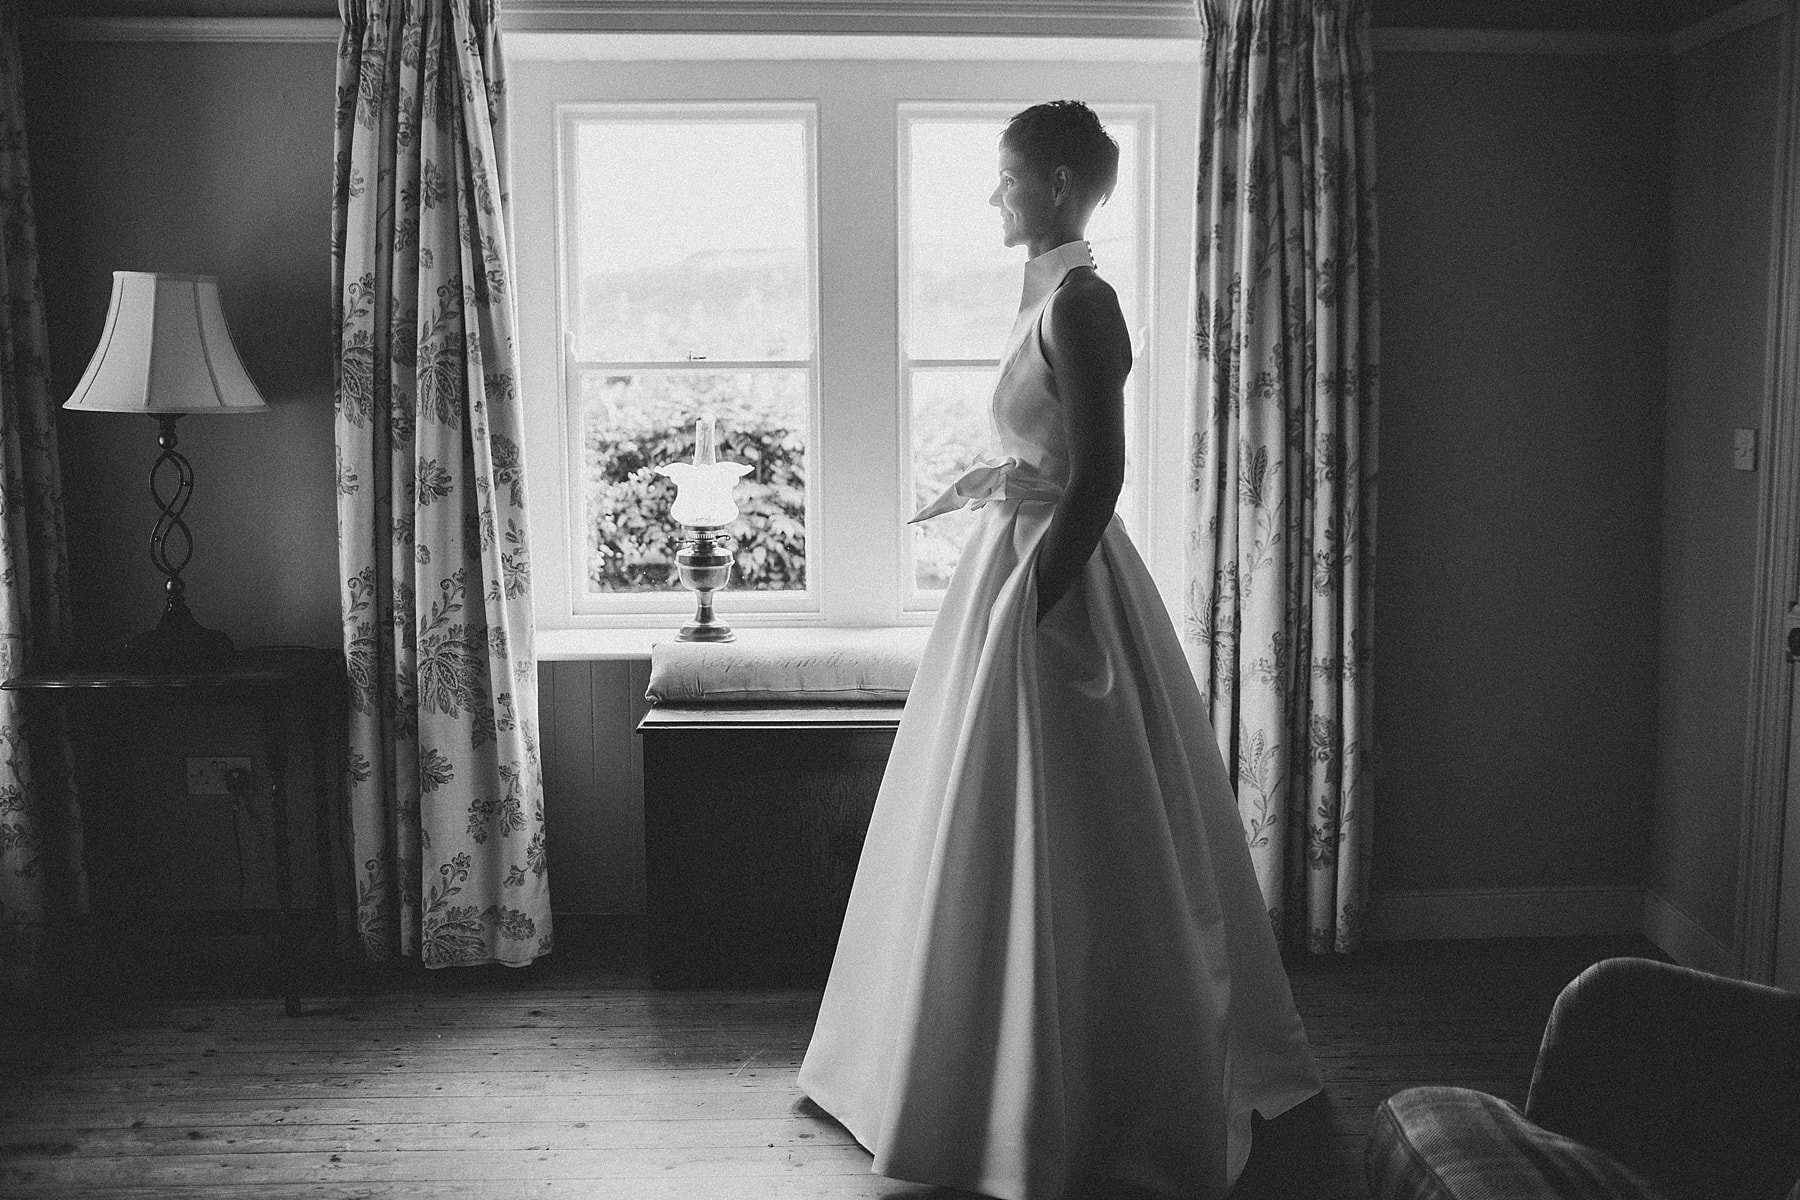 Portbradden harbour wedding,bridal prep,north coast wedding photographer,national trust northern ireland,bride,white bridesmaid dress,